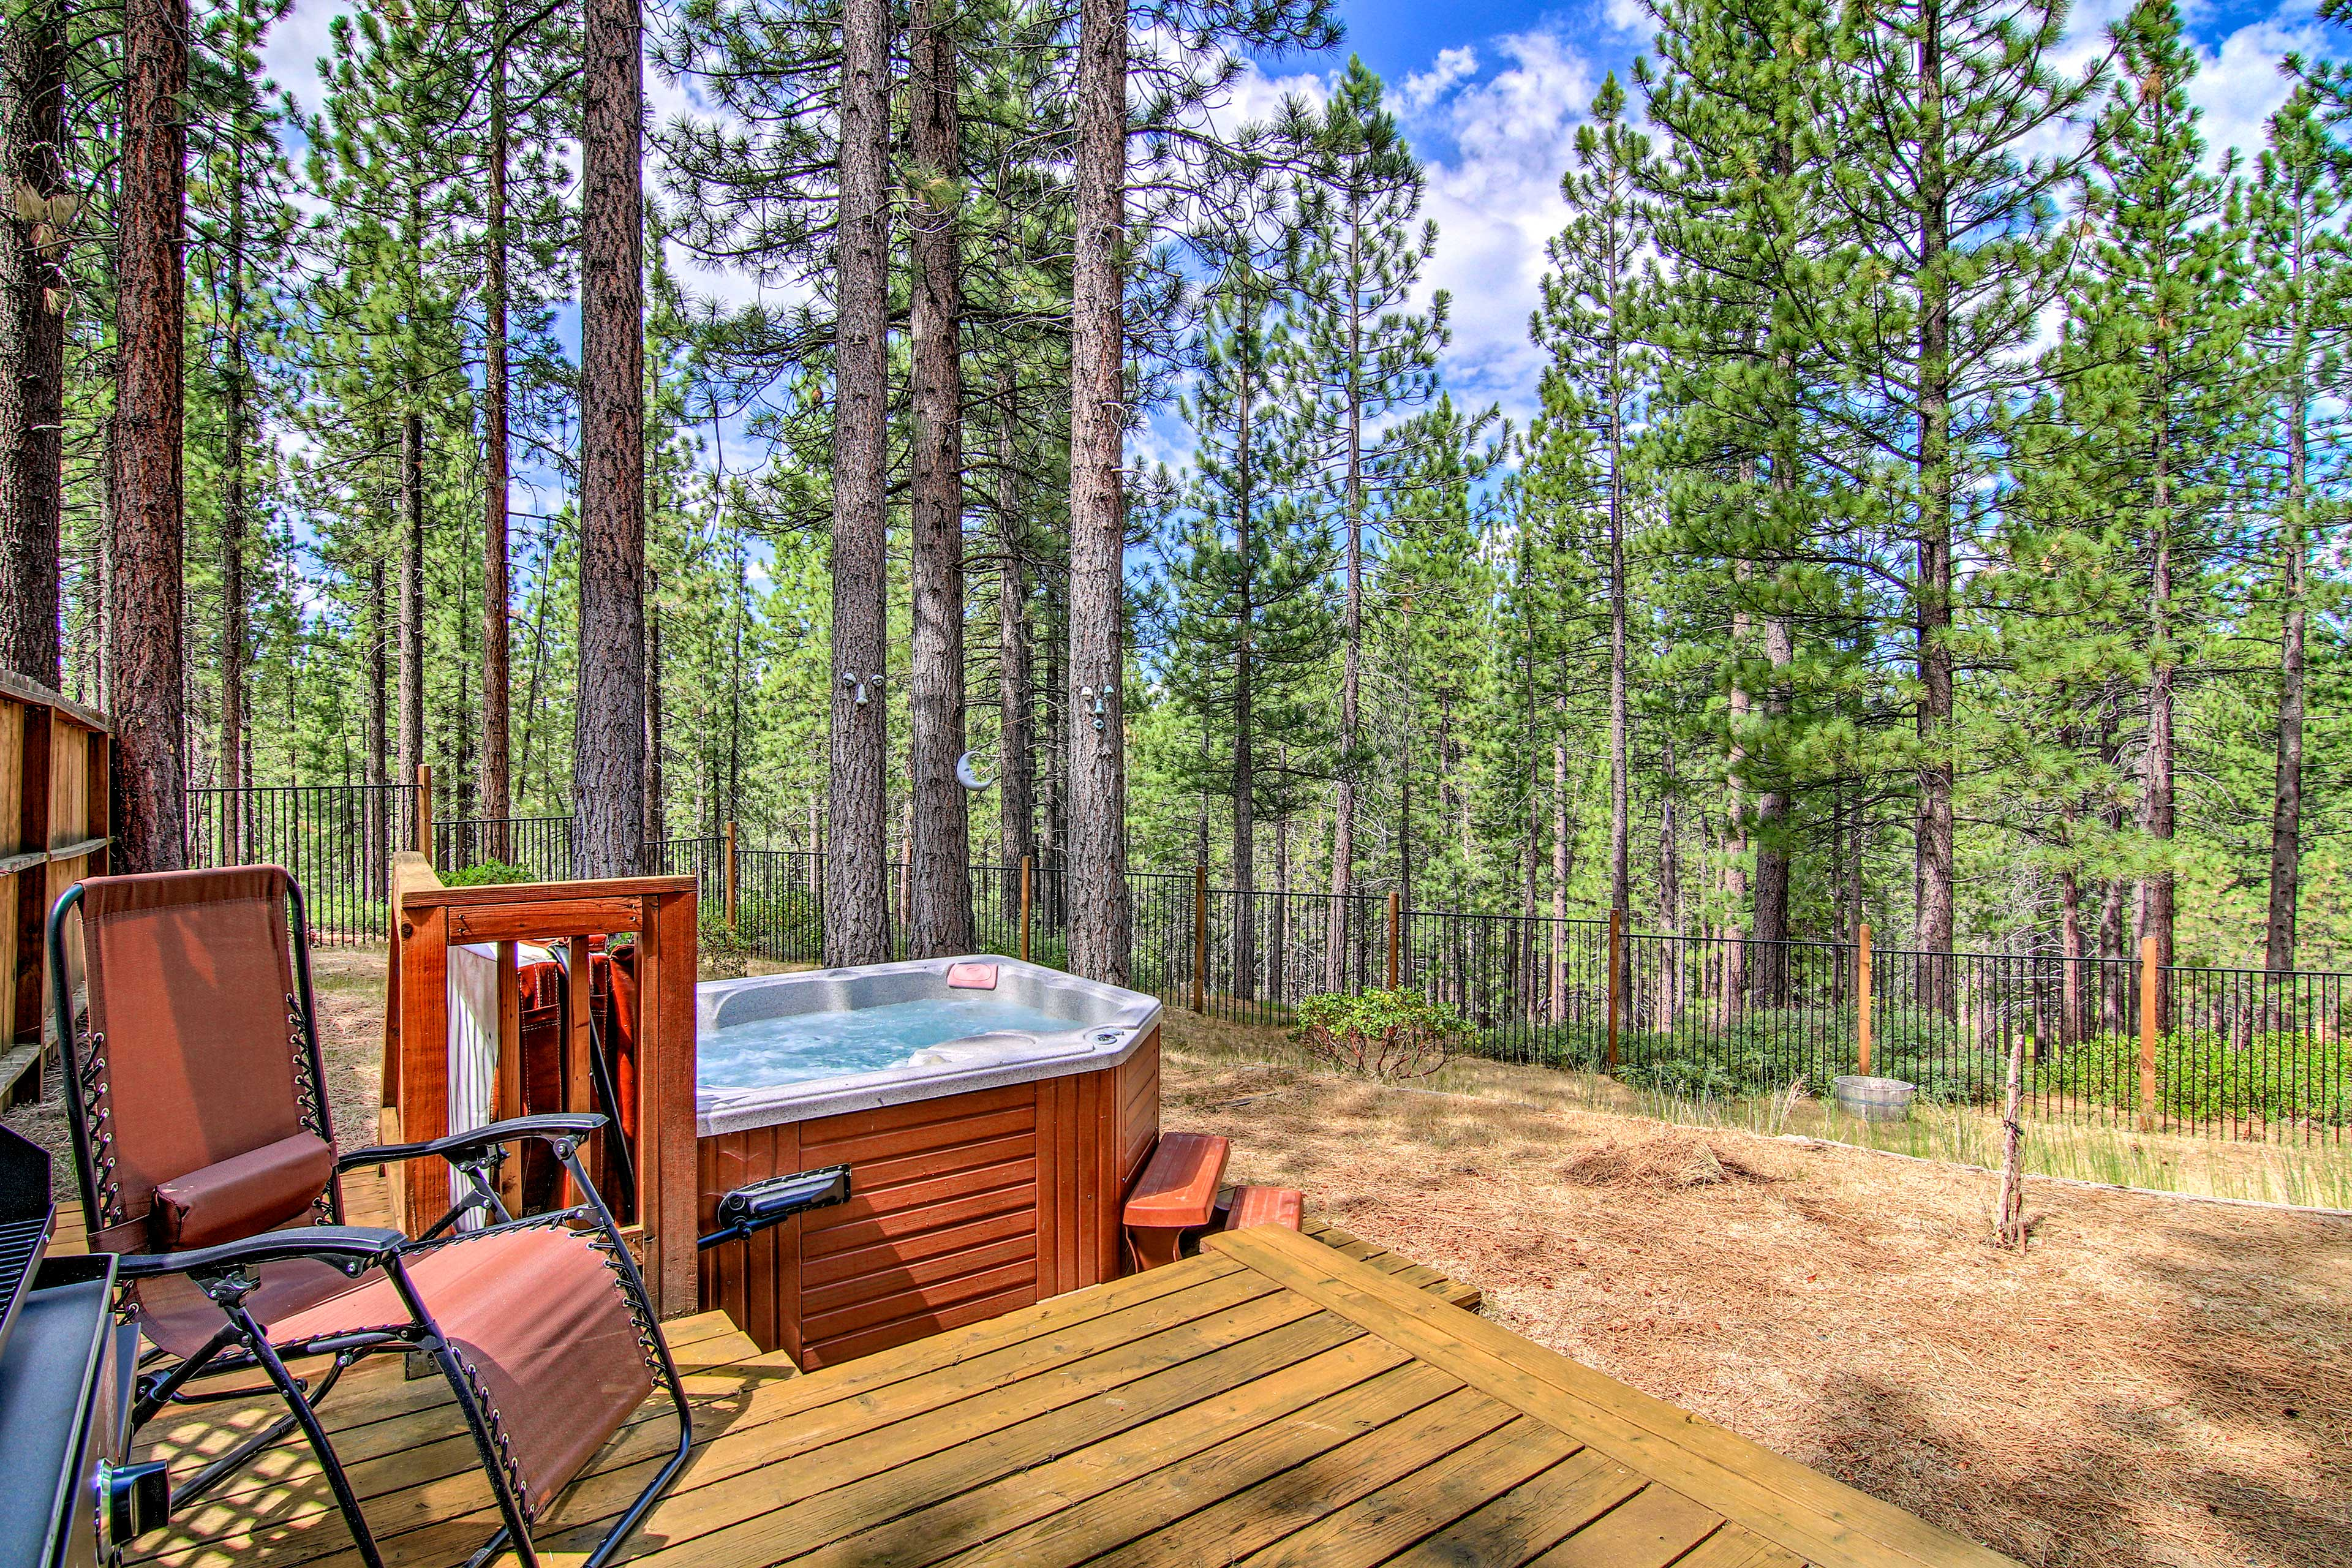 Lounge on the patio furniture or opt for a soak in the hot tub.